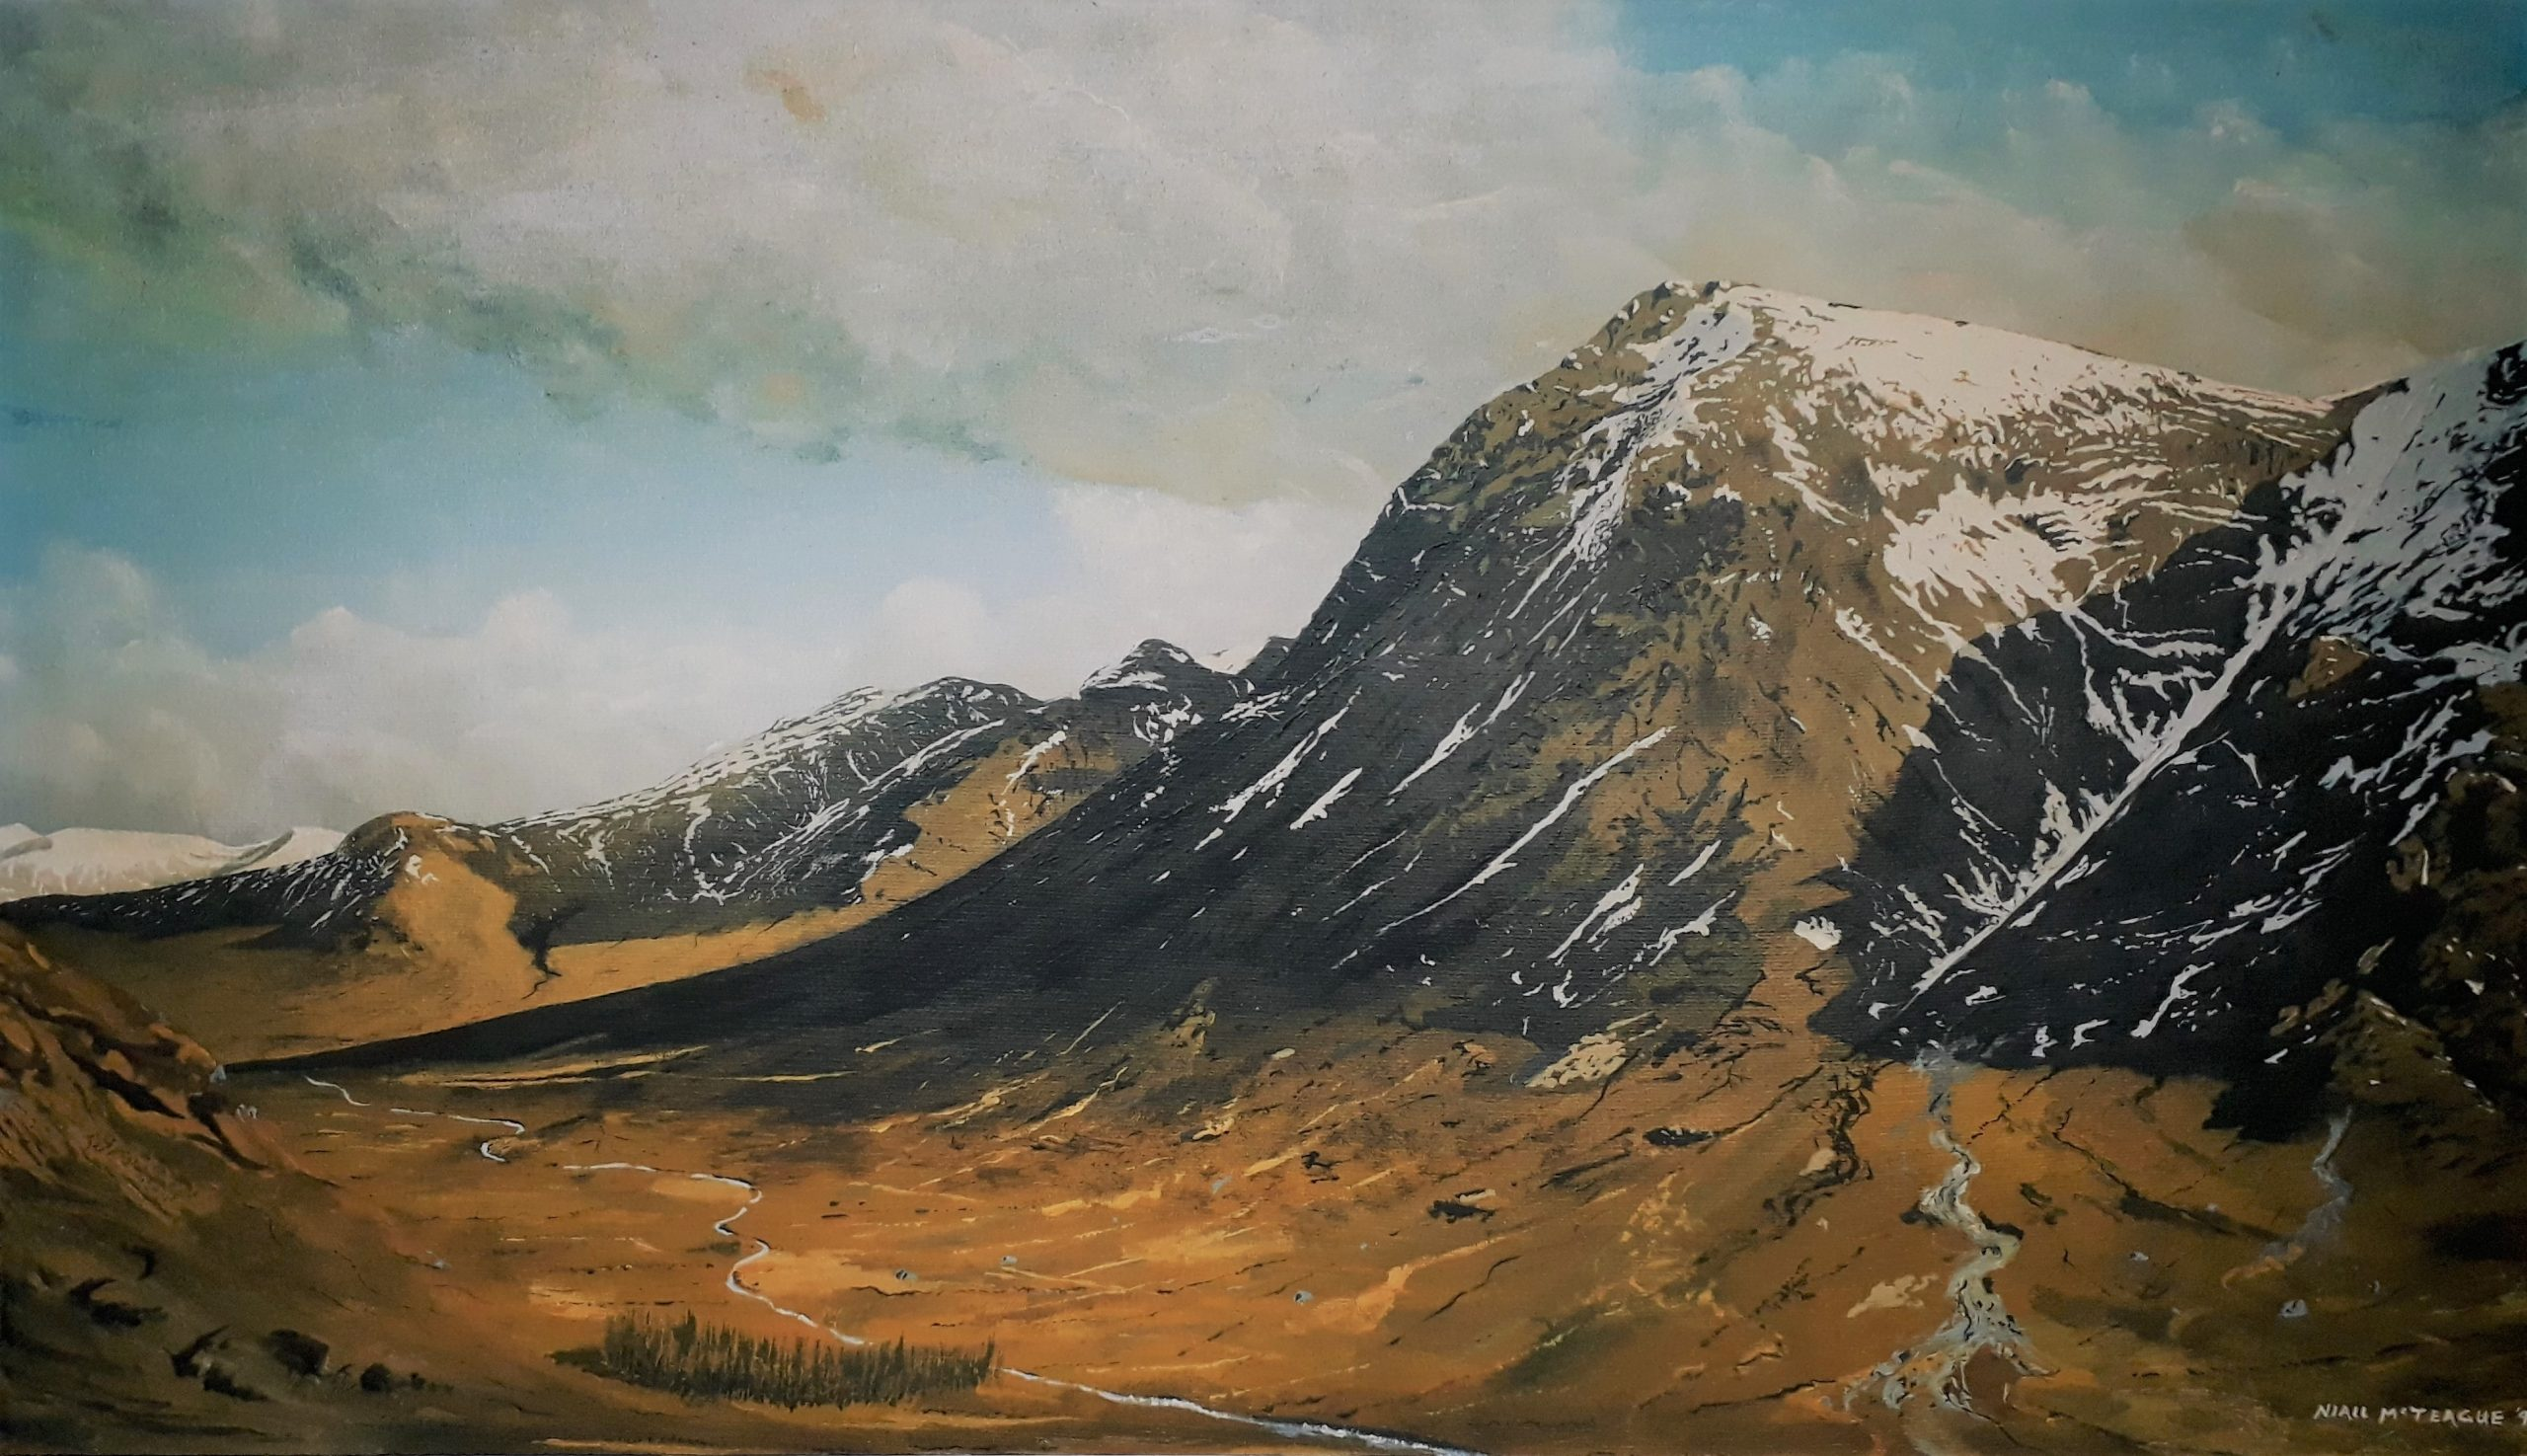 Glencoe from the Devils Staircase